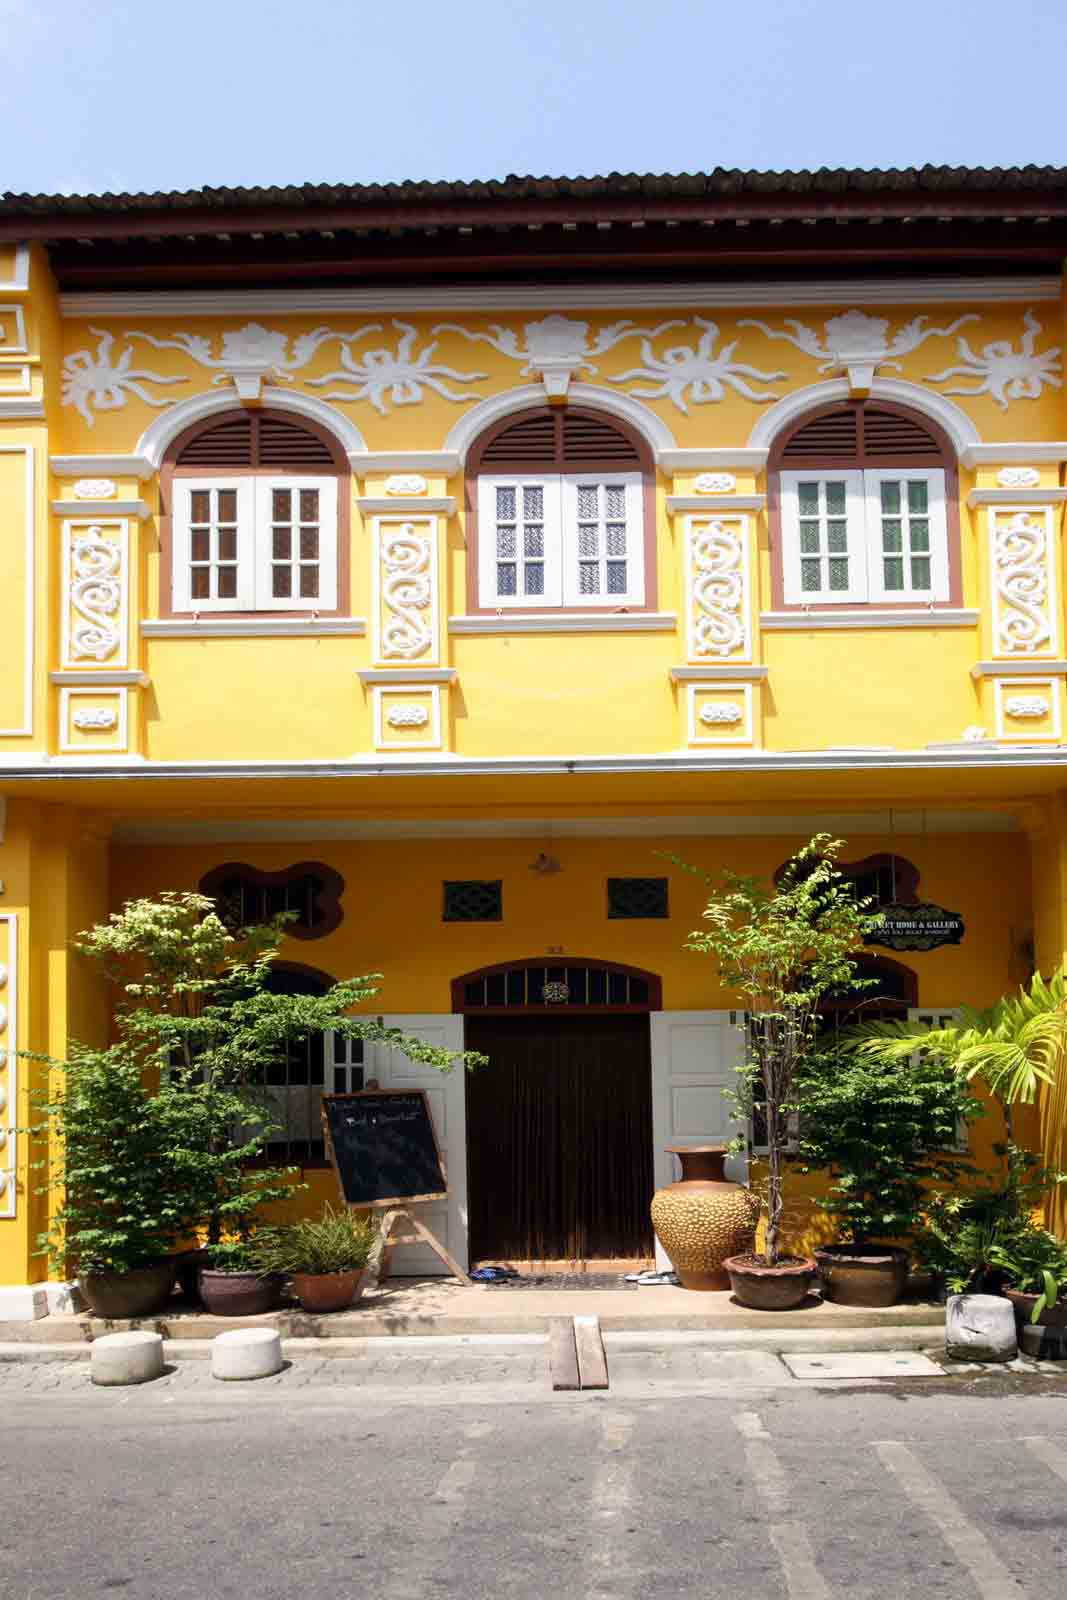 Phuket Town Charming Architecture And Fascinating Sino Colonial Tales